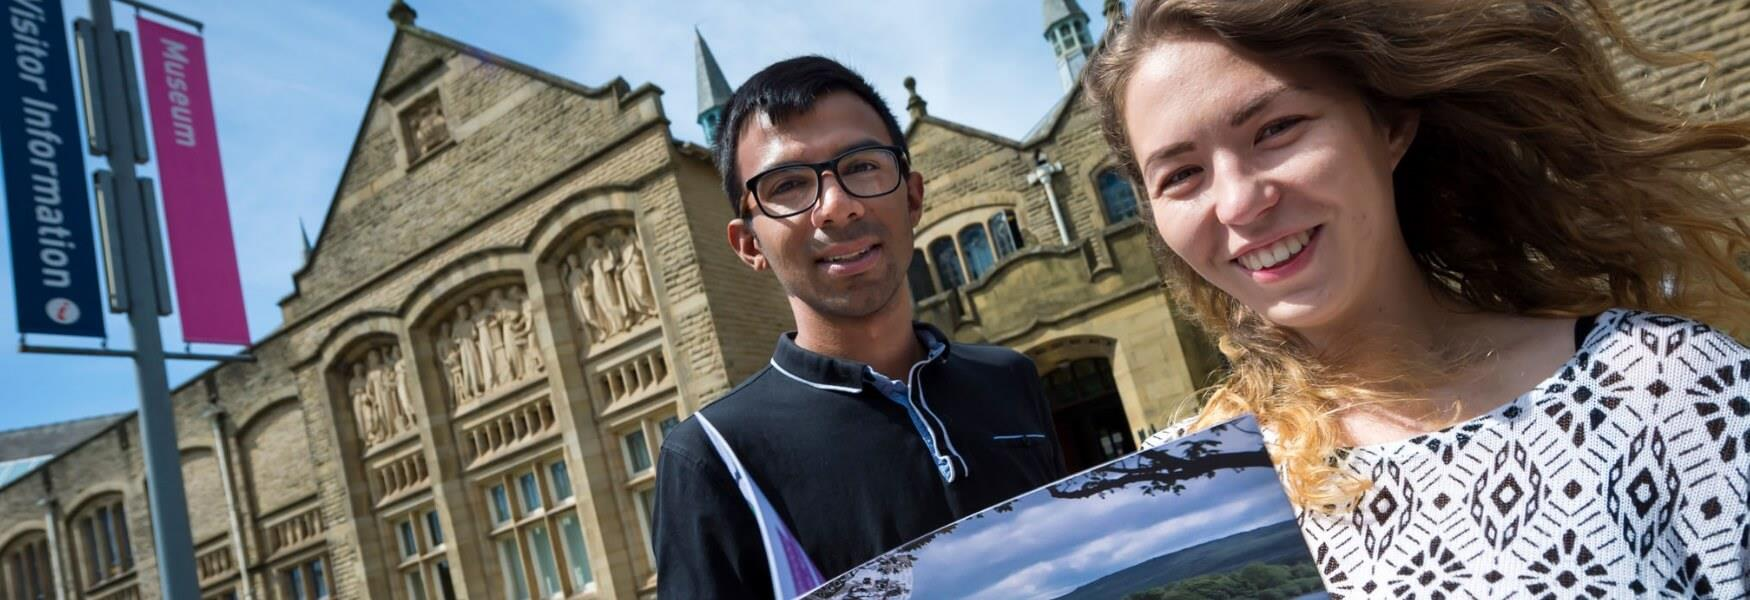 A smiling couple in front of Touchstones Rochdale.